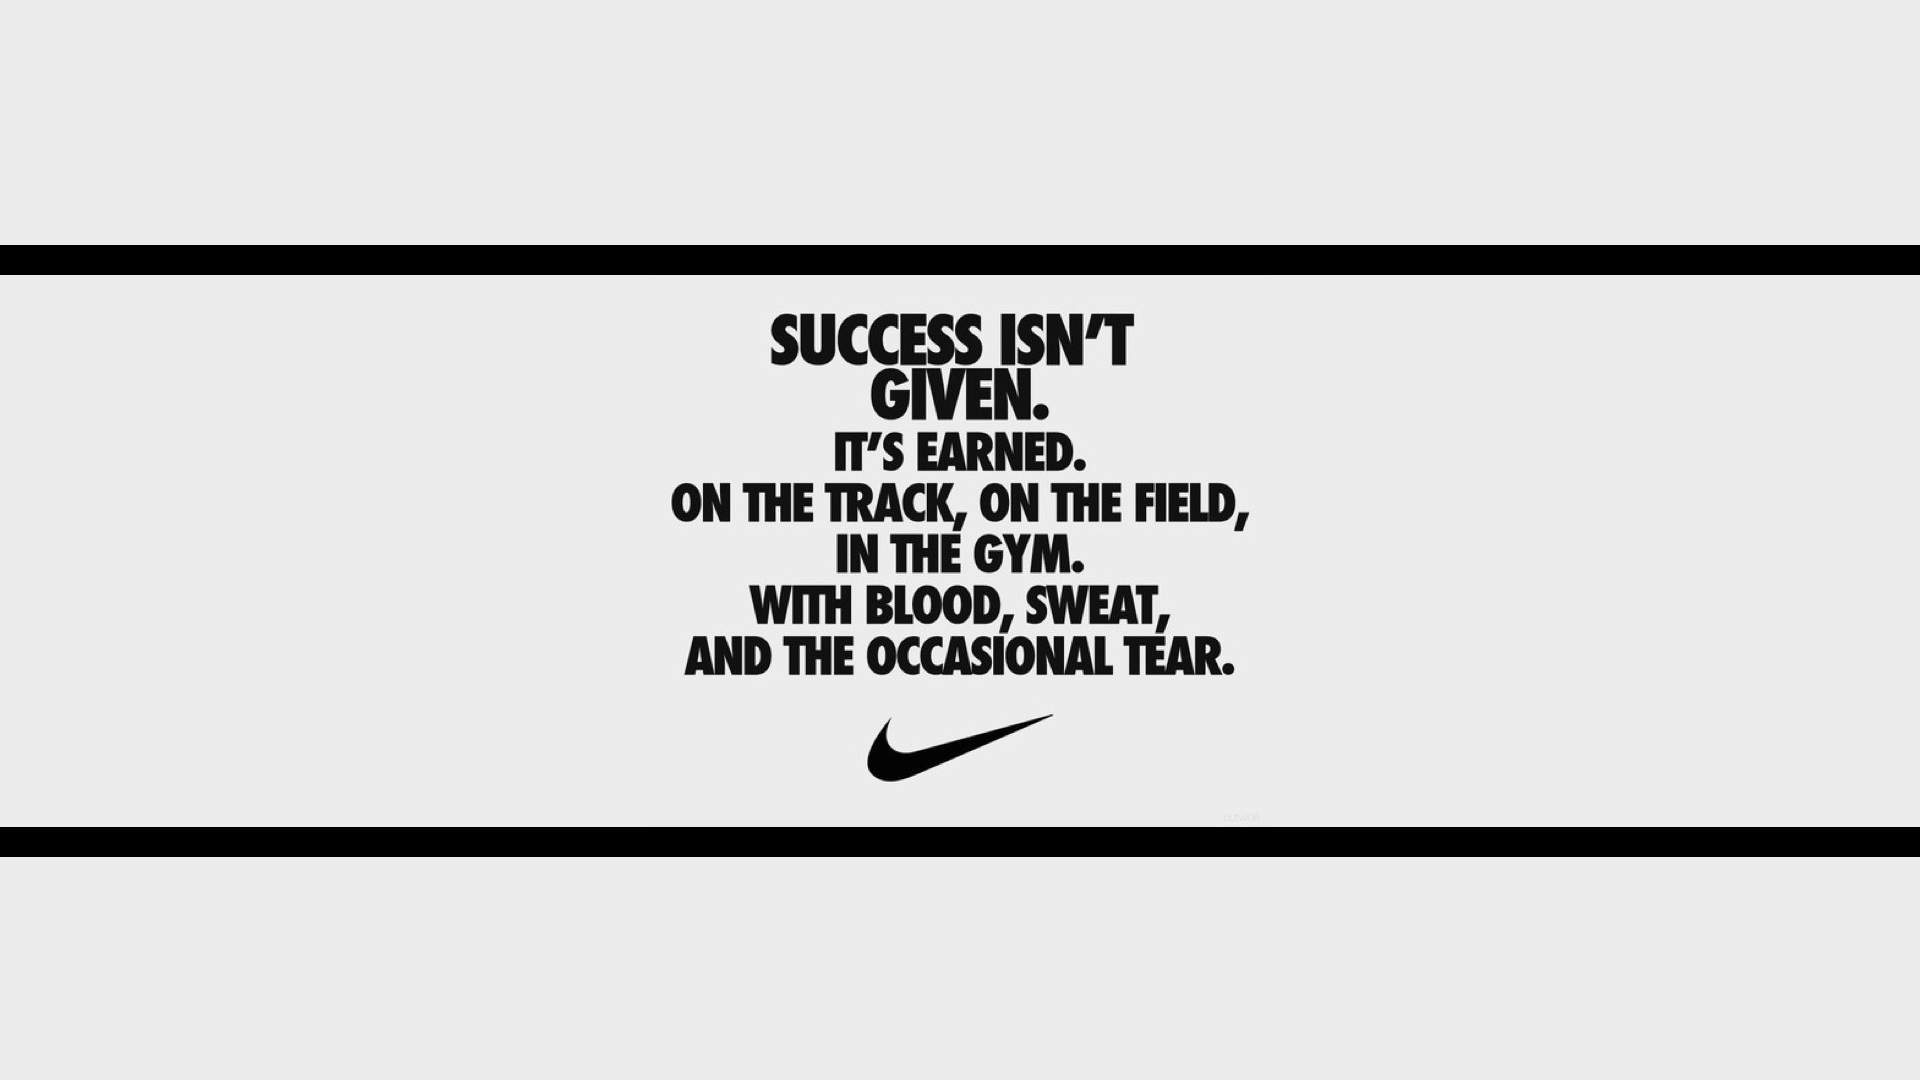 HD Nike Motivational Iphone Wallpapers